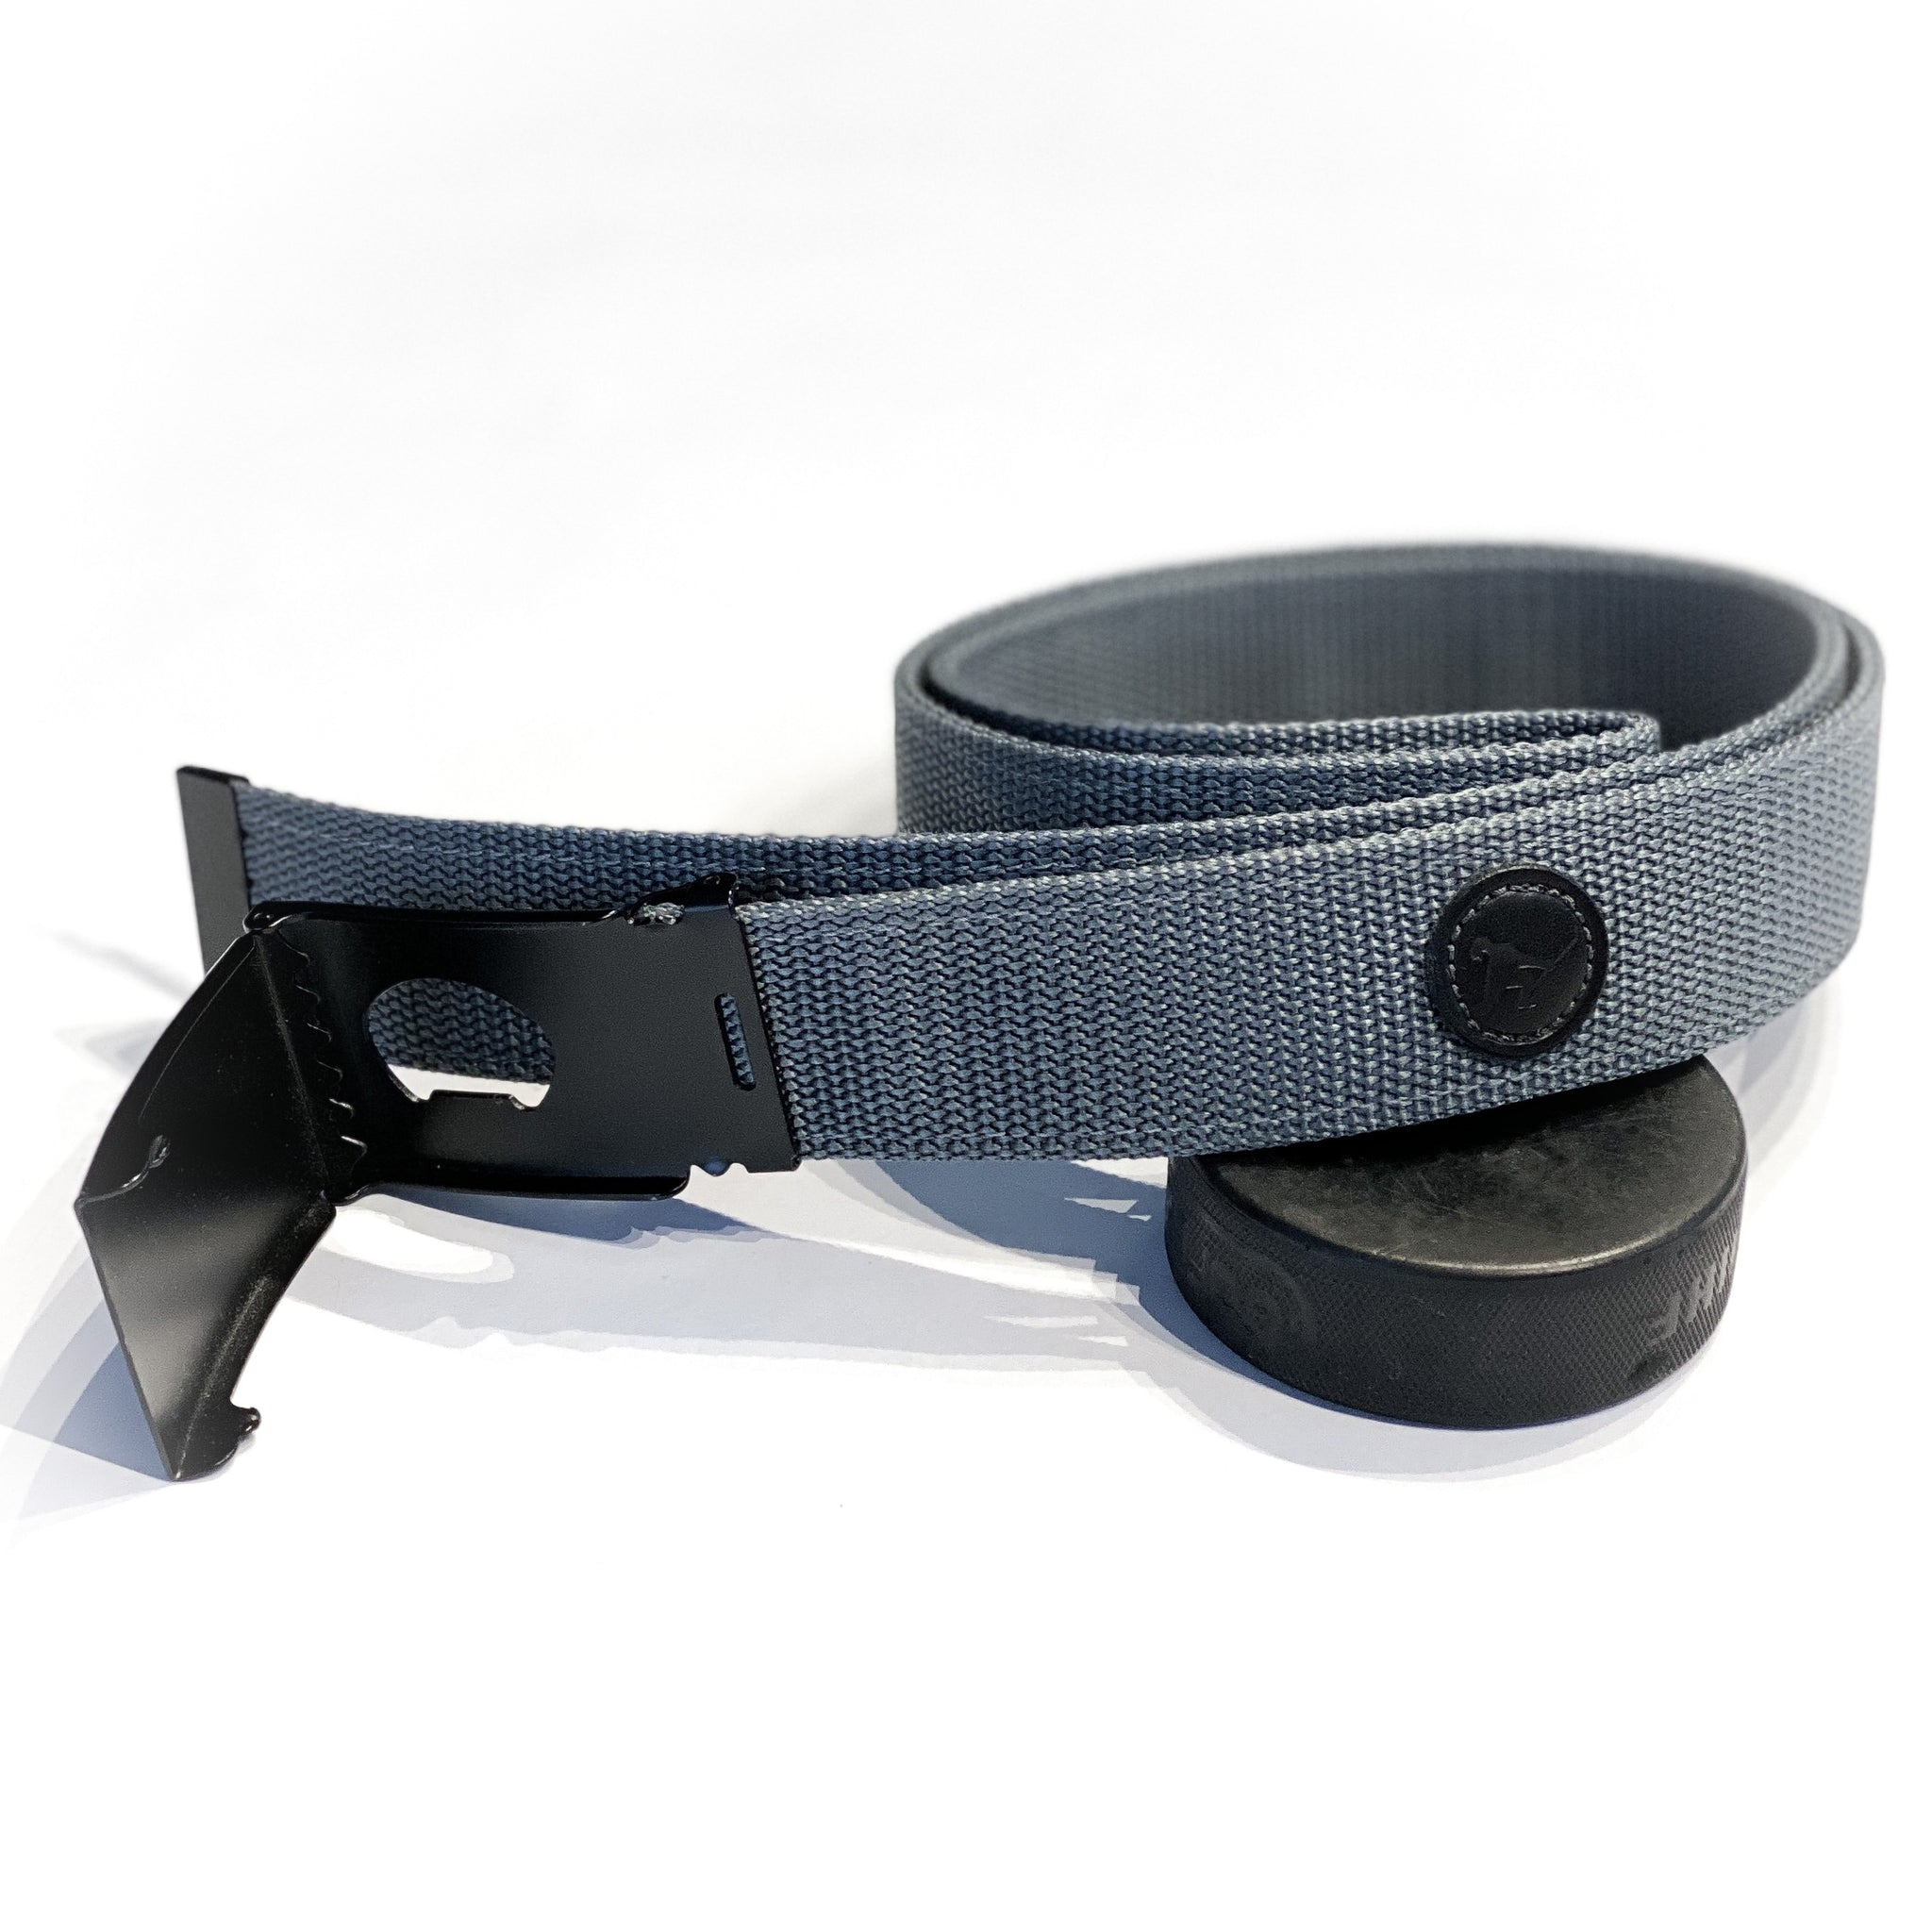 Breezer Belt *Bottle Opener (Charcoal) - Beauty Status Hockey Co.